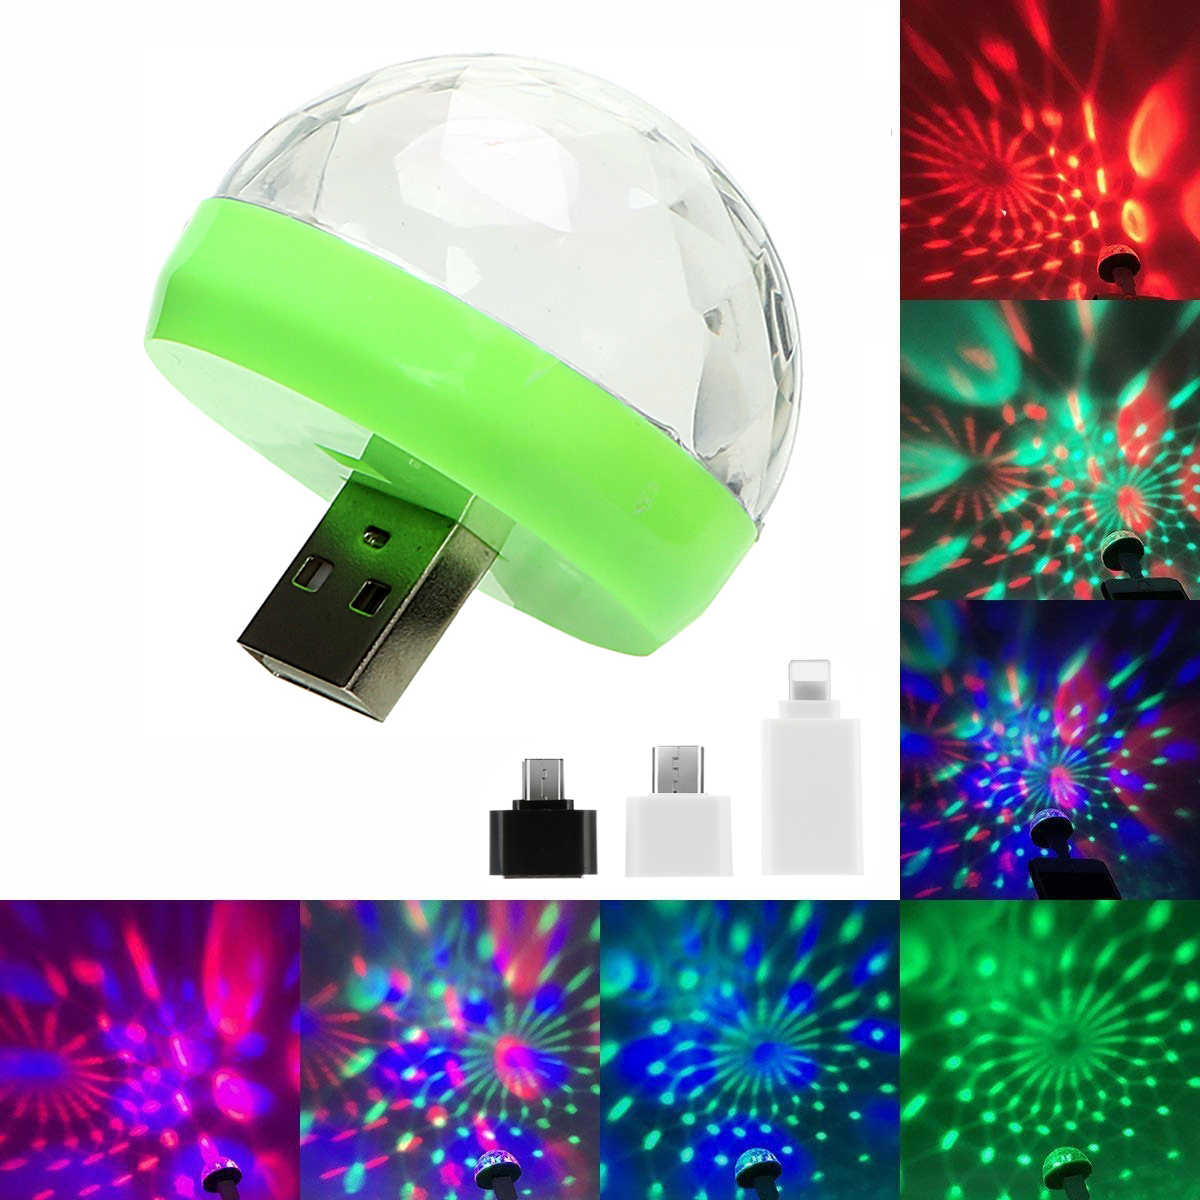 Tragbare Mini USB LED Atmosphäre Licht Bühne Magie DJ Disco Ball Lampe Indoor Home Party USB Zu Apple Android Telefon disco Licht